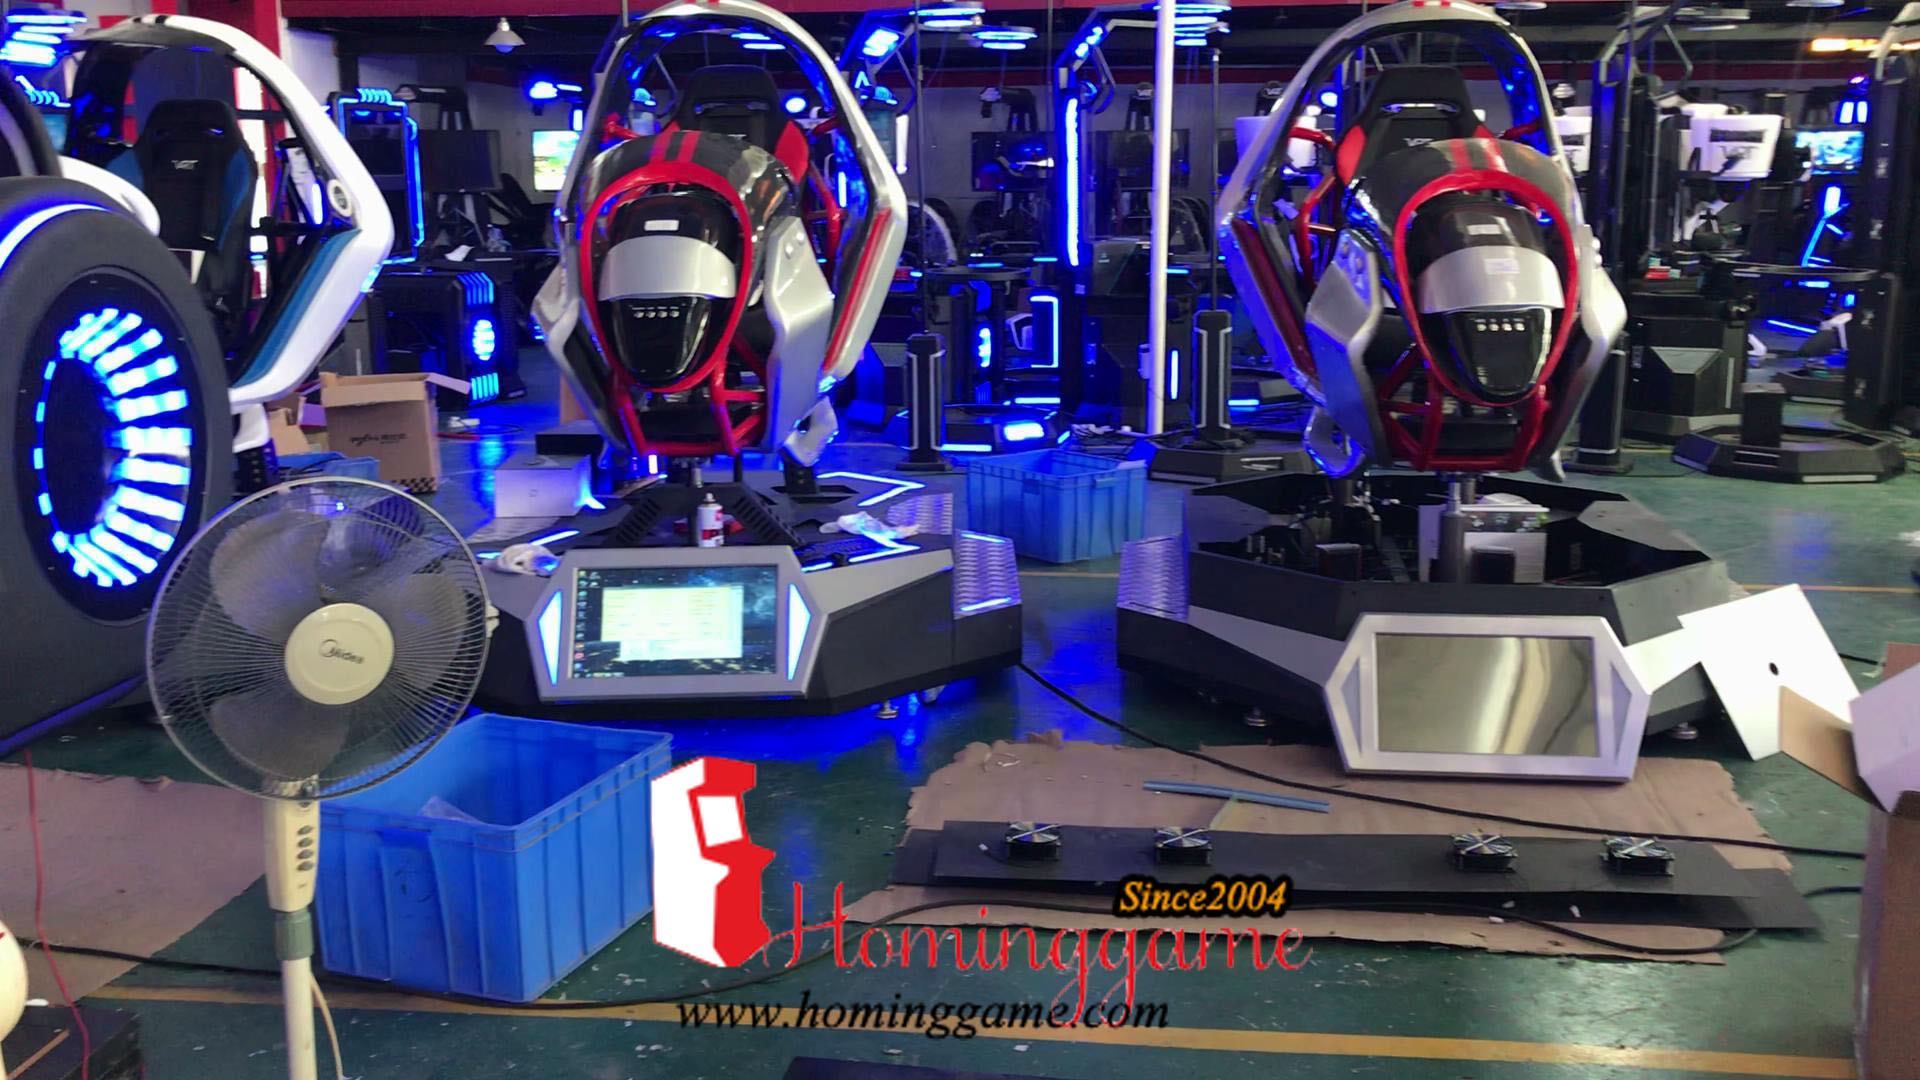 2018 Hot 3 Seats 9D VR Egss Reality Game Machine,2 Seats 9D VR Egg Reality Game Machine,9D VR Cinema Egg Game,9D VR game,VR Game,9D VR,VR game machine,9D VR cinema,9D VR theater,9D,9D Machine,VR Egg,Single VR egg,Double 9D VR egg, 3 Player 9D VR egg,9D VR Bike,9D VR 6 seats Theater,6 seats VR theater,9D Cinema,9D racing Car Game Machine,9D VR gun shooting game machine,9D VR airplane,9D VR simulator game machine,Game Machine,Arcade Game Machine,Coin Operated Game Machine,Amusement park game machine,Simulator game machine,Indoor game machine,Family Entertainment,Entertainment game machine